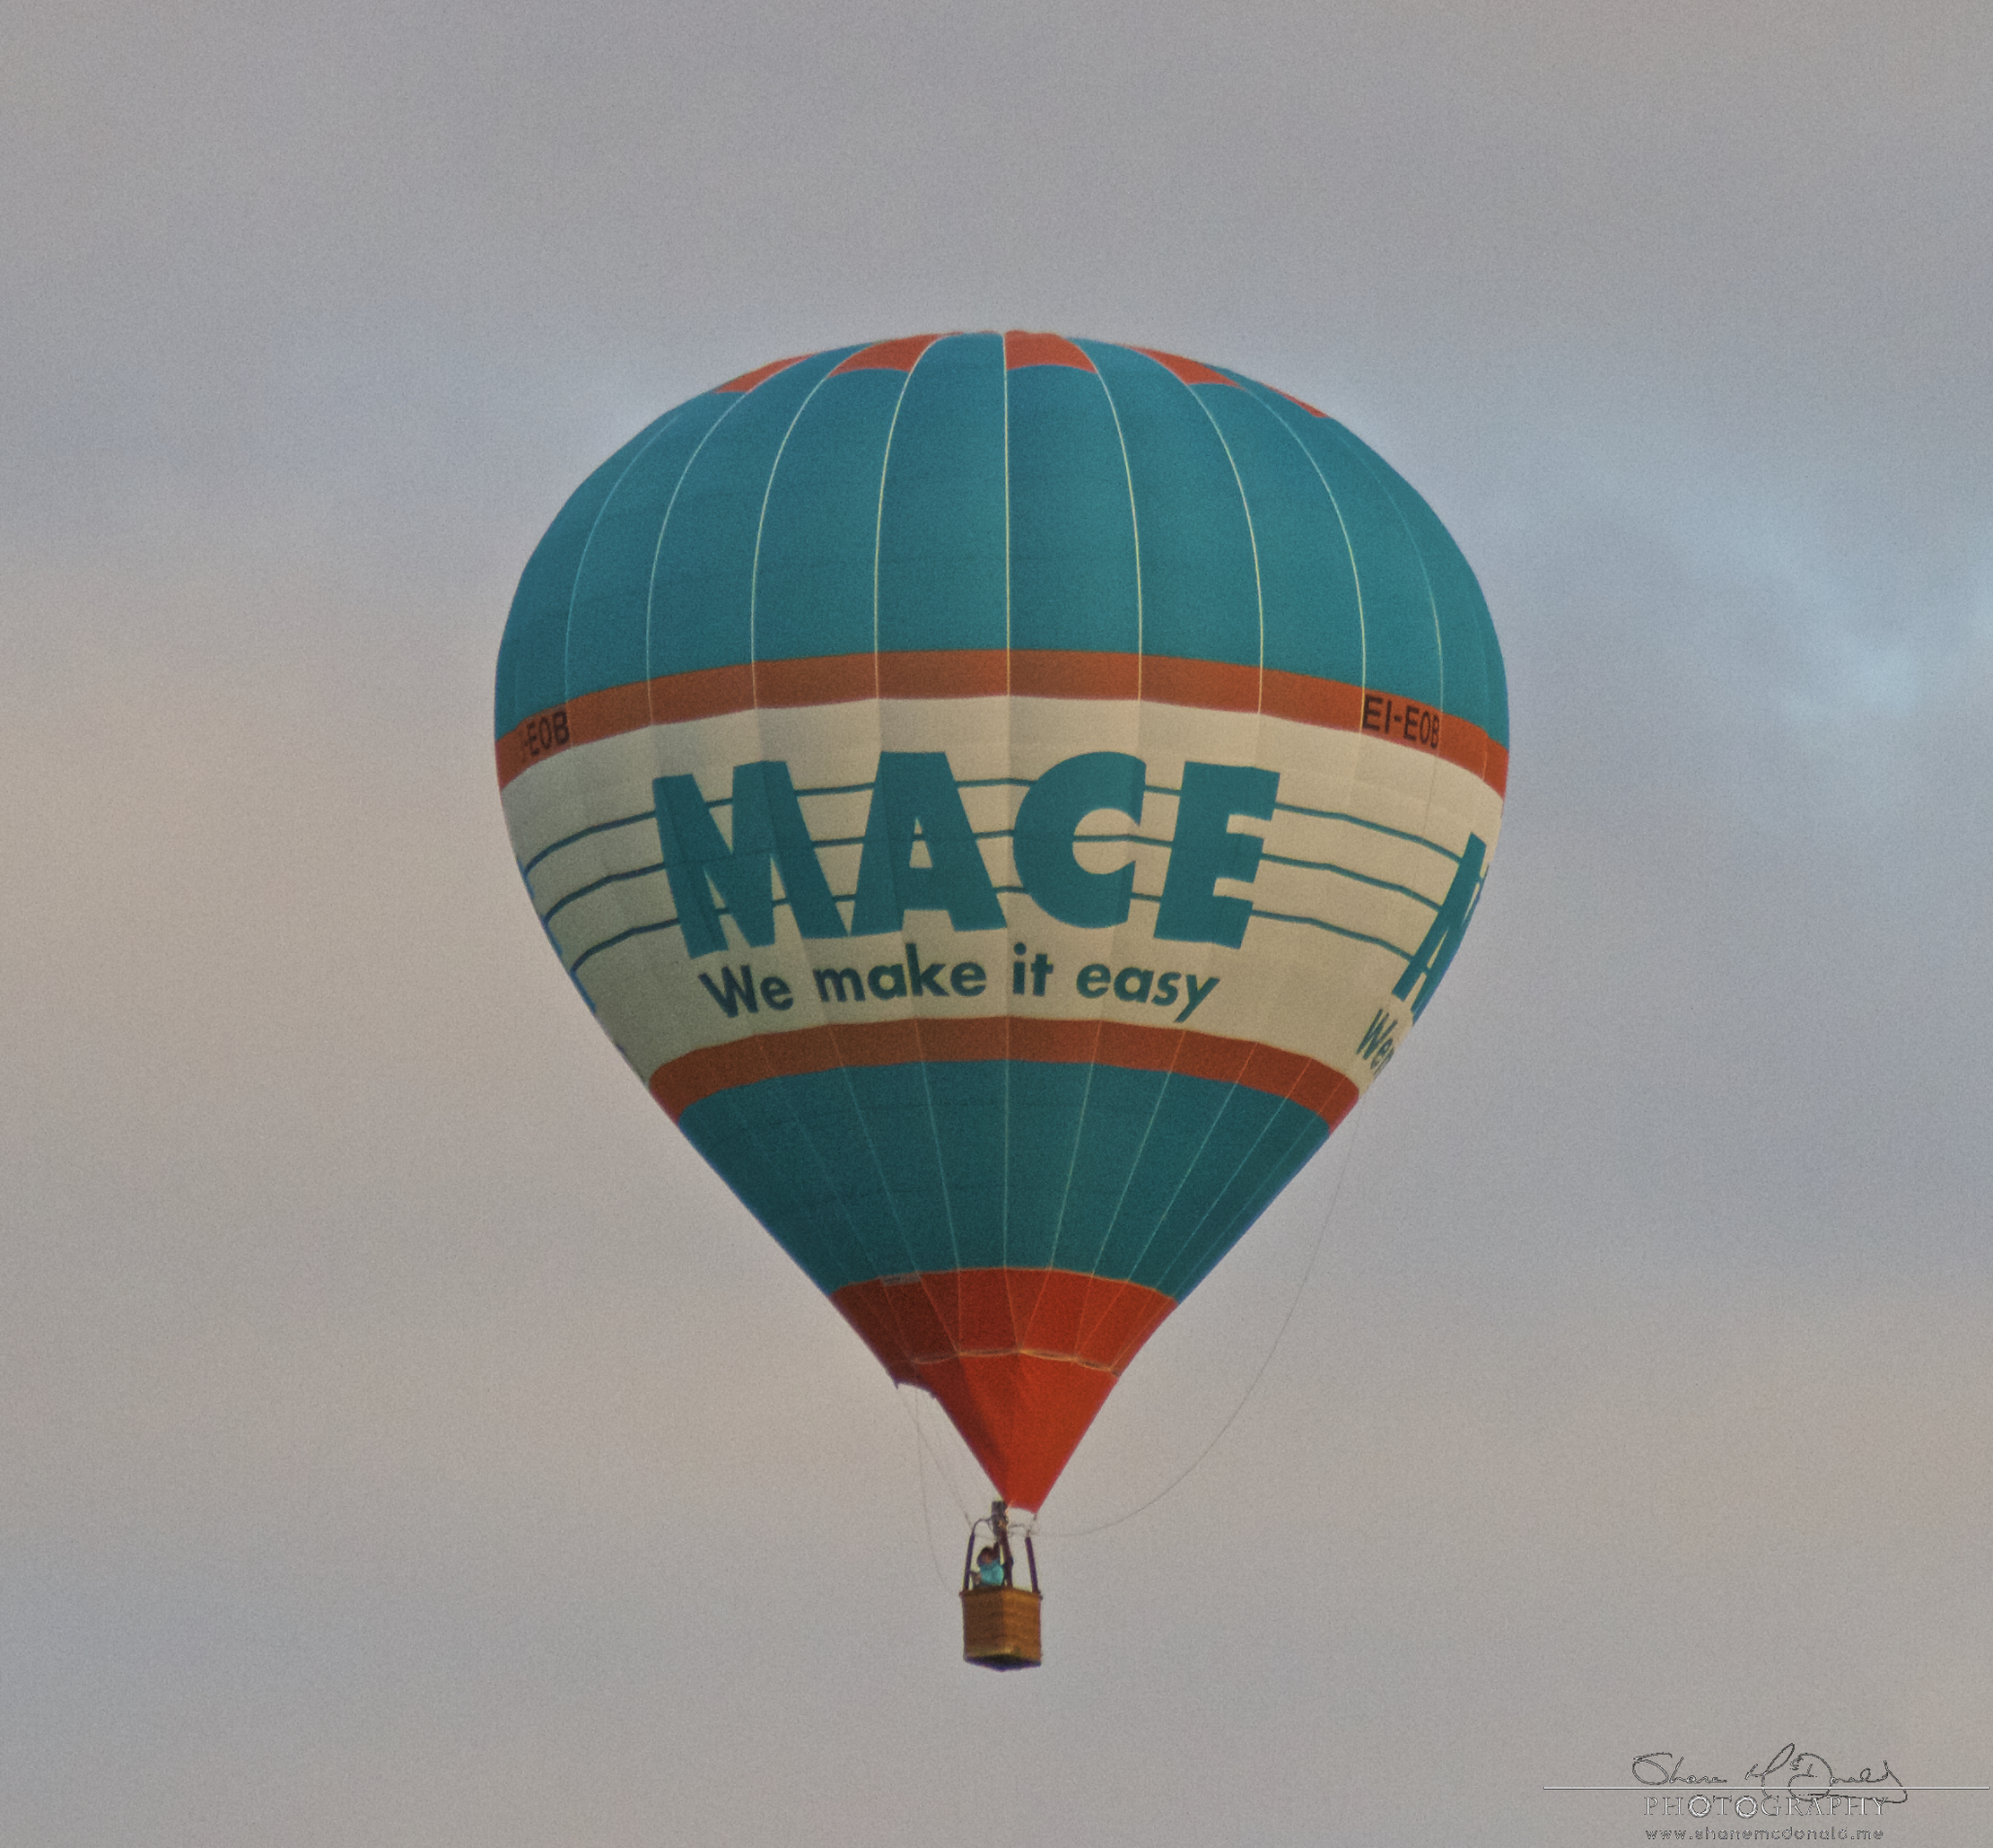 Irish Balloon Championships Mace Balloon